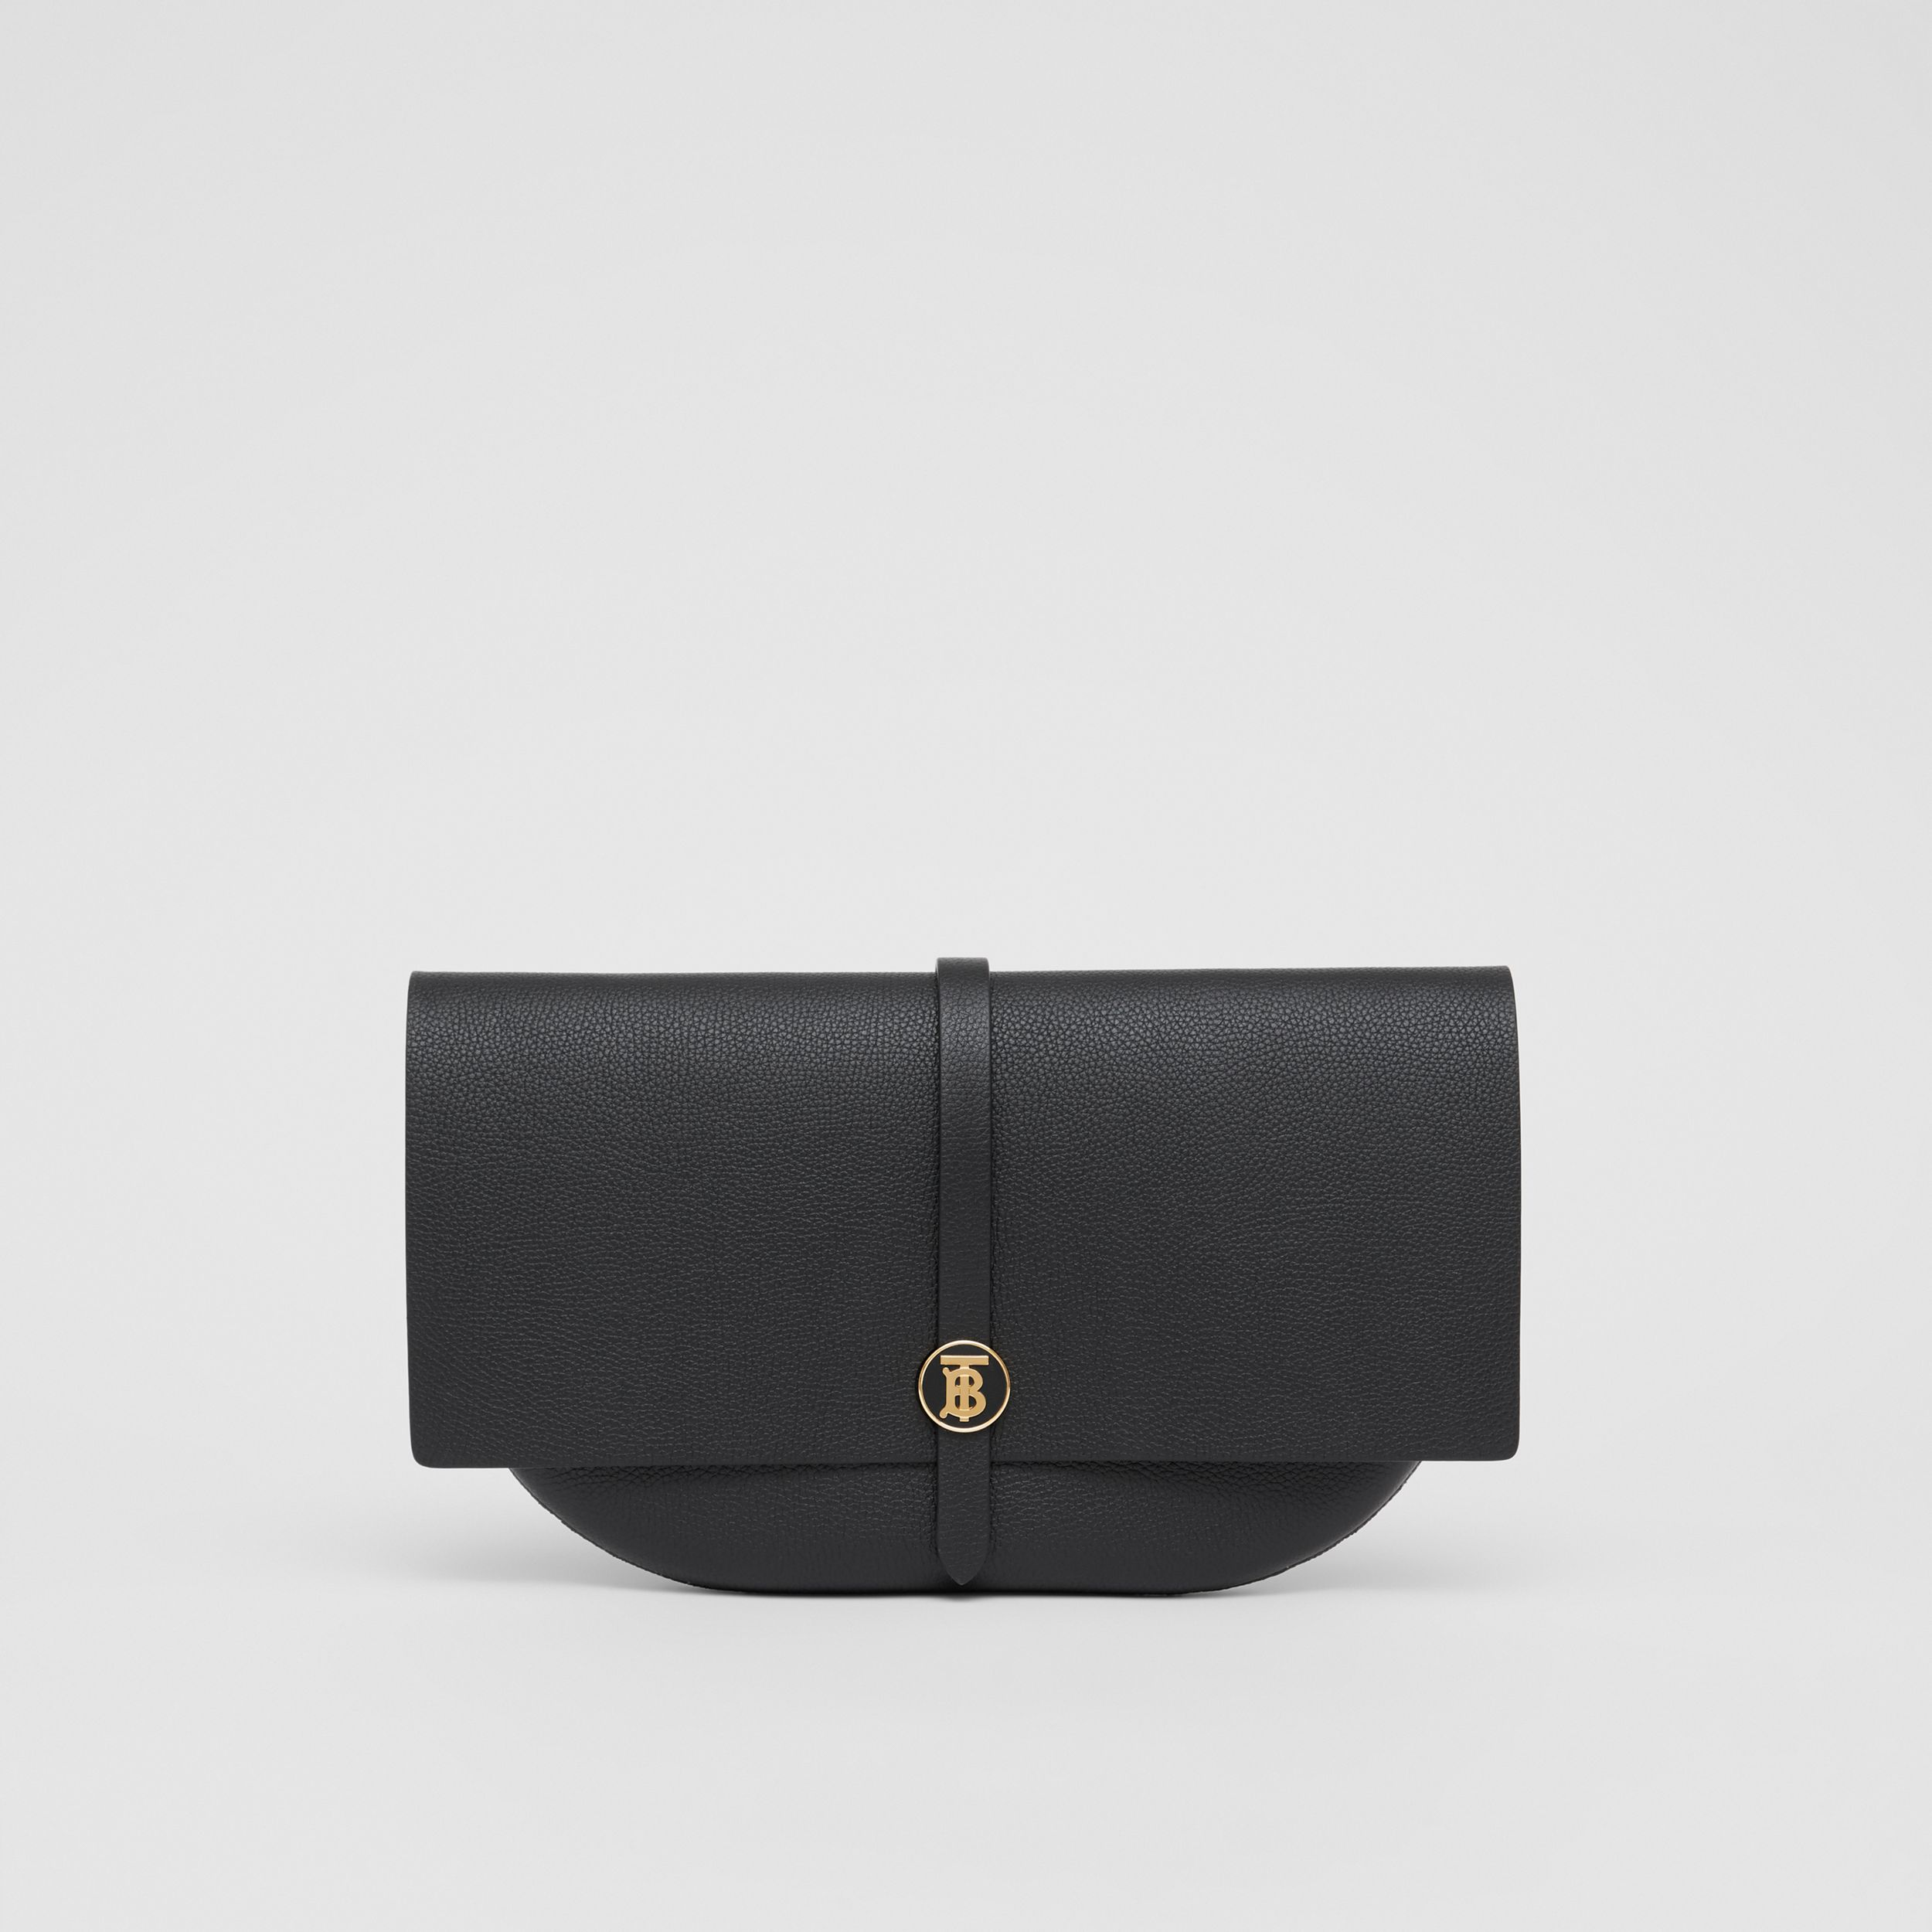 Grainy Leather Anne Clutch in Black - Women | Burberry Australia - 1